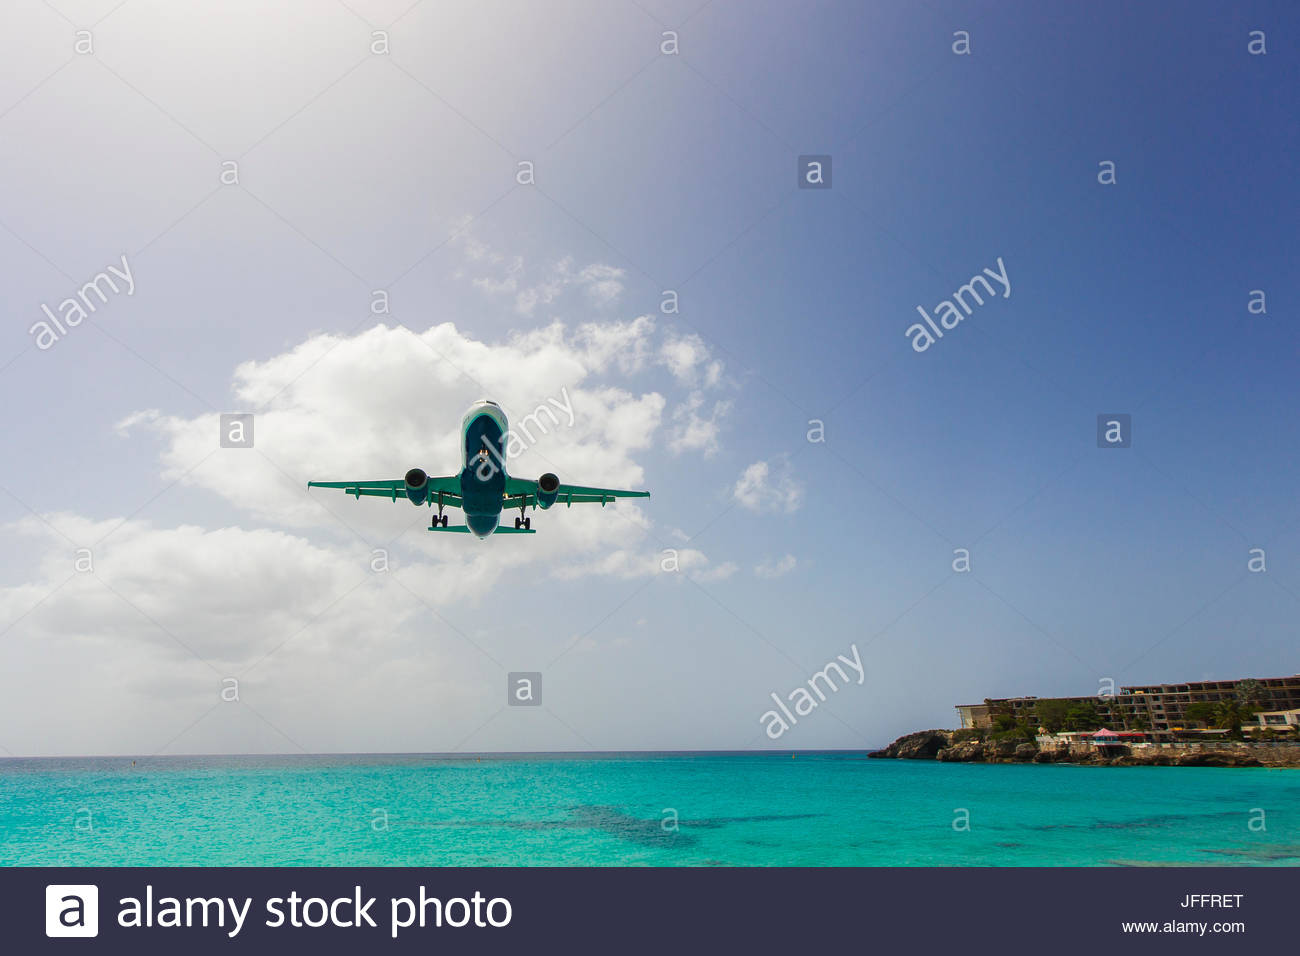 A jumbo jet airplane flying low over the Atlantic Ocean just before landing at Princess Juliana Airport. - Stock Image